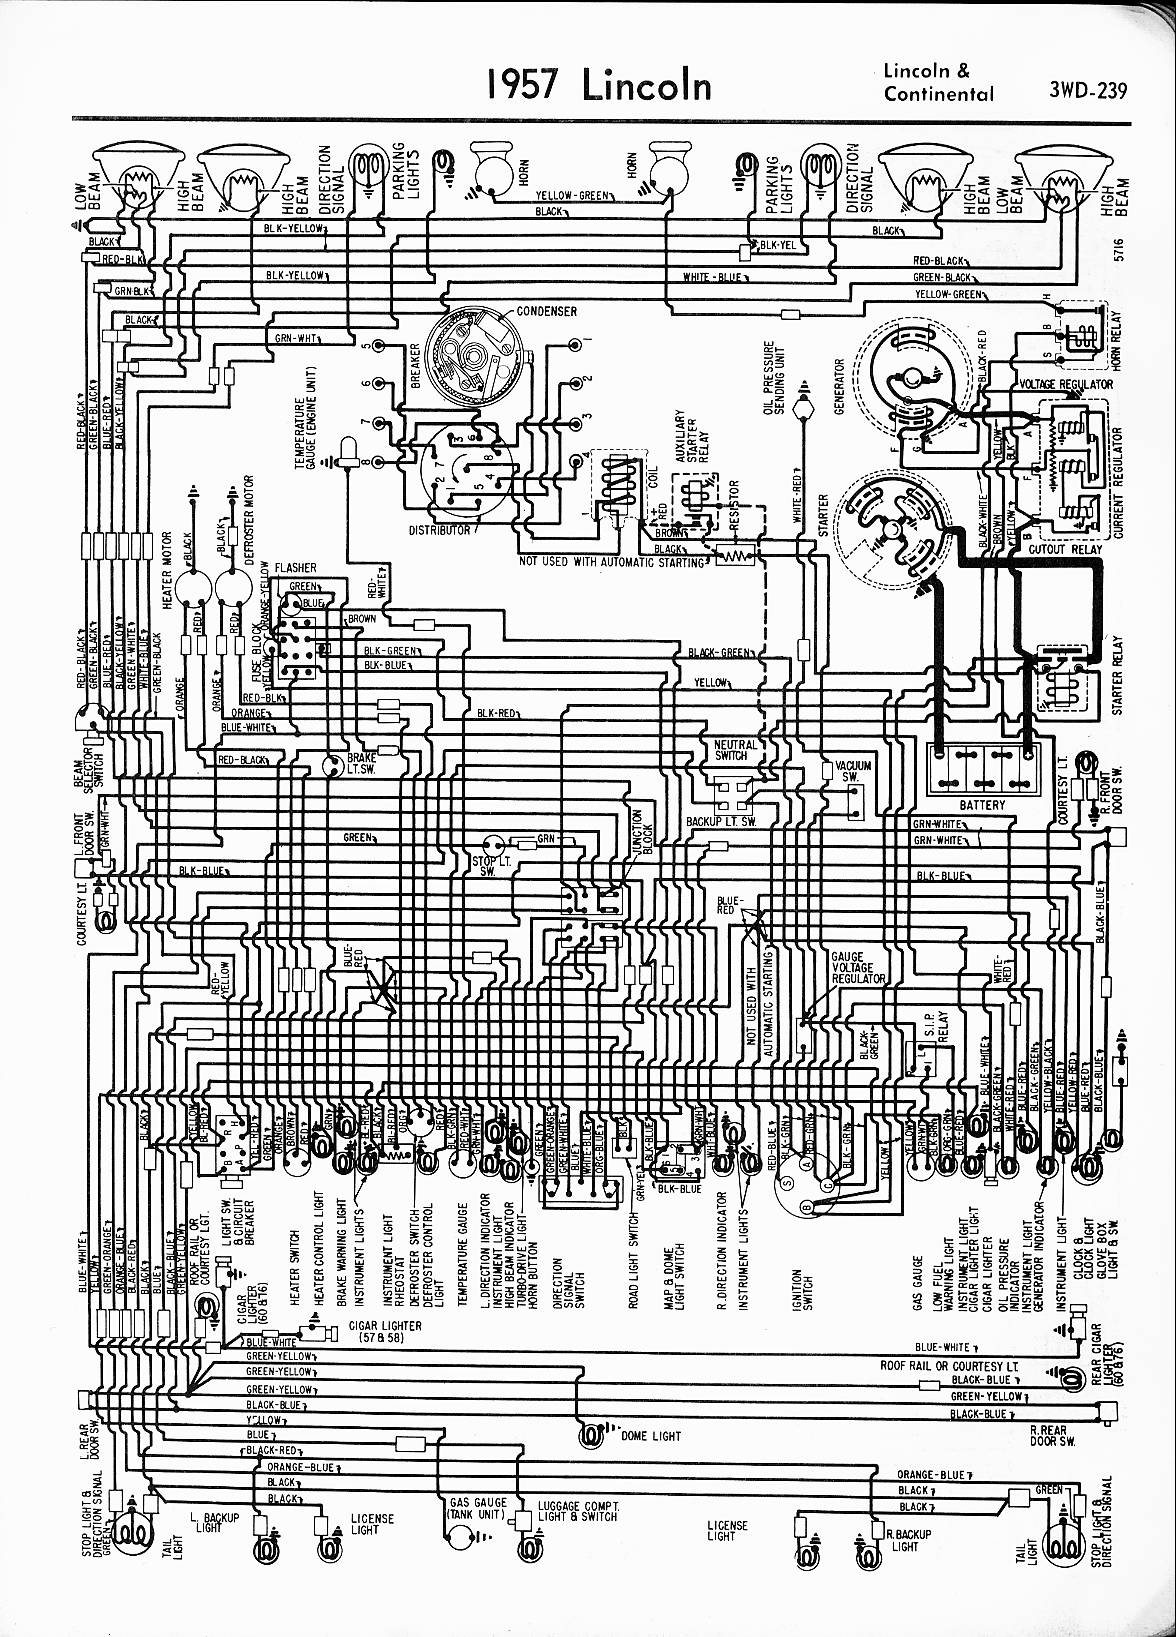 MWireLin_Lin57_z3wd 239z_001 free lincoln wiring diagrams free vehicle wiring diagrams \u2022 wiring ford wiring diagrams free-wiring-diagrams.weebly.com at crackthecode.co